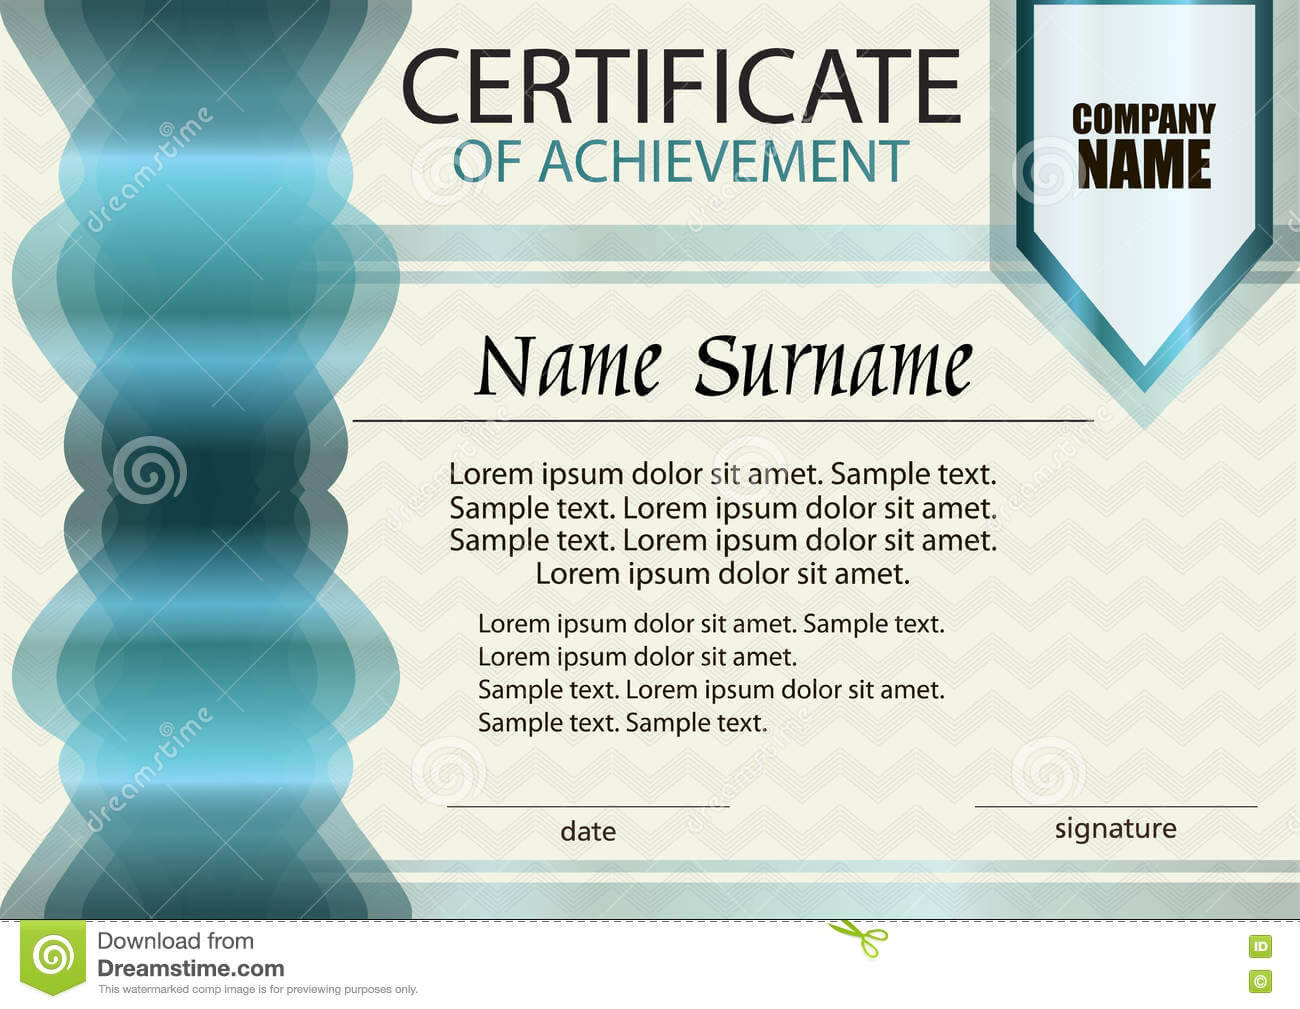 Certificate Of Achievement Or Diploma Template. Stock Vector With Certificate Of Attainment Template